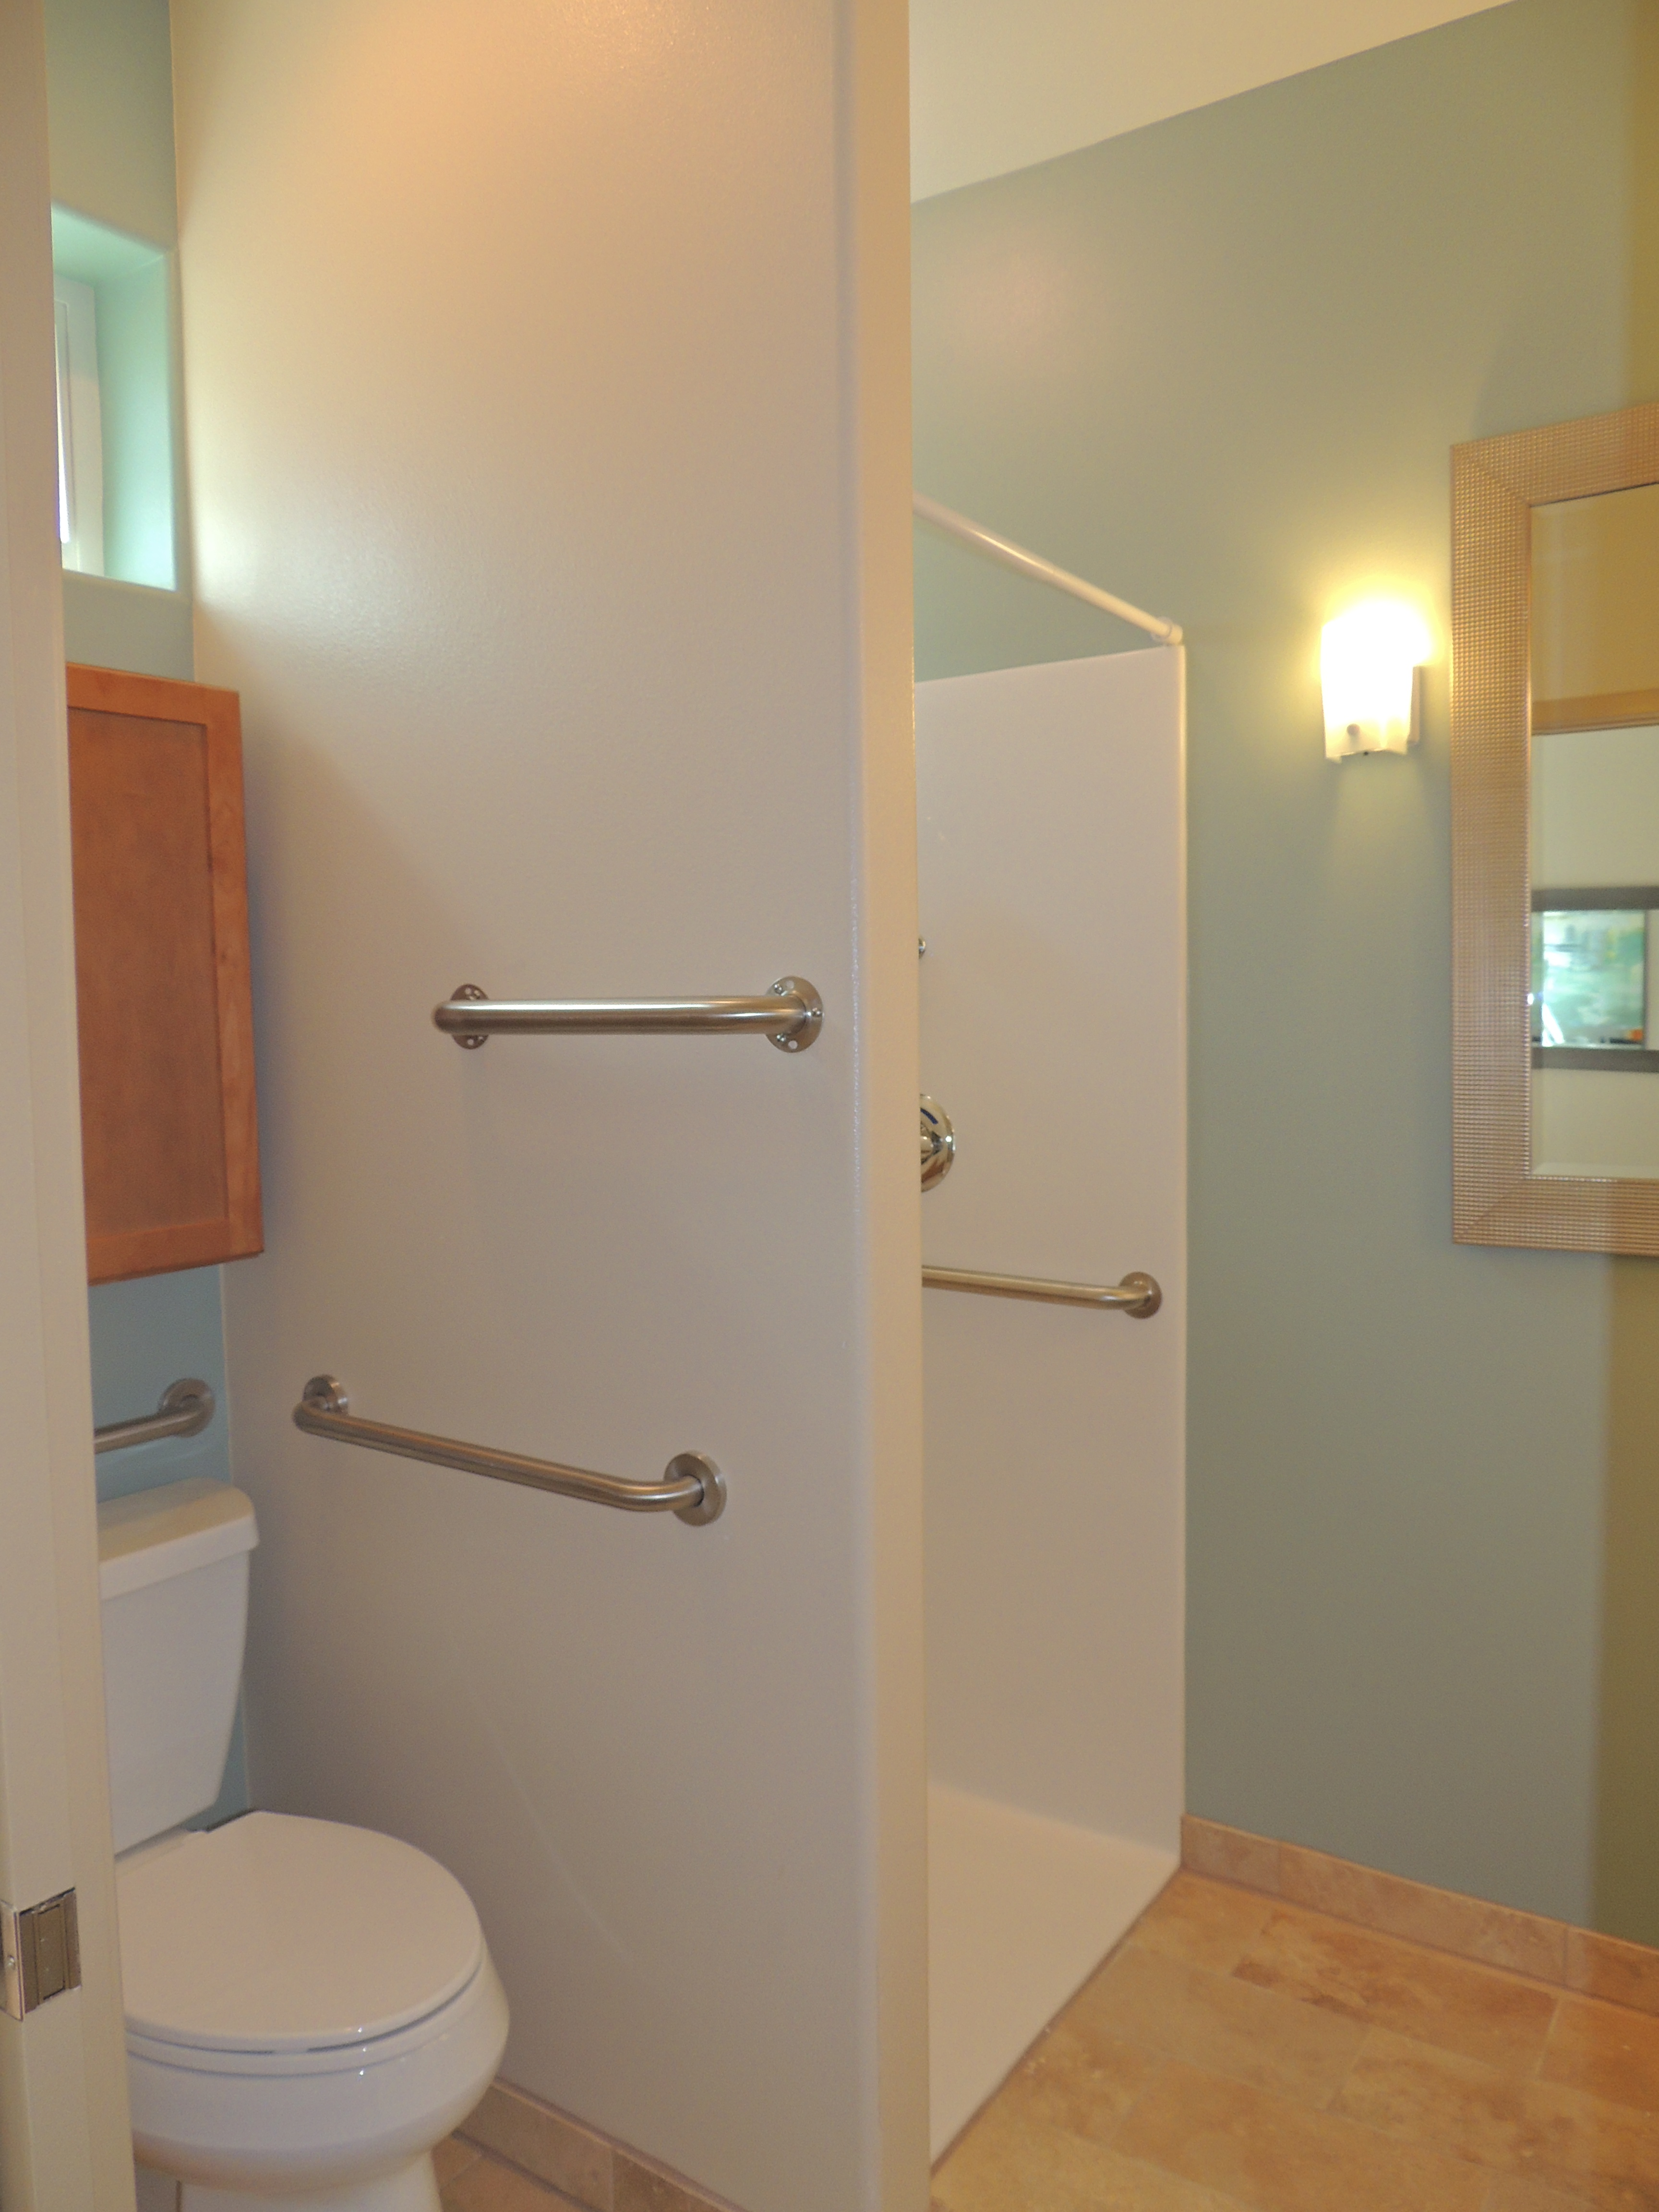 Accessibility home modifications in austin - Bathroom modifications for disabled ...